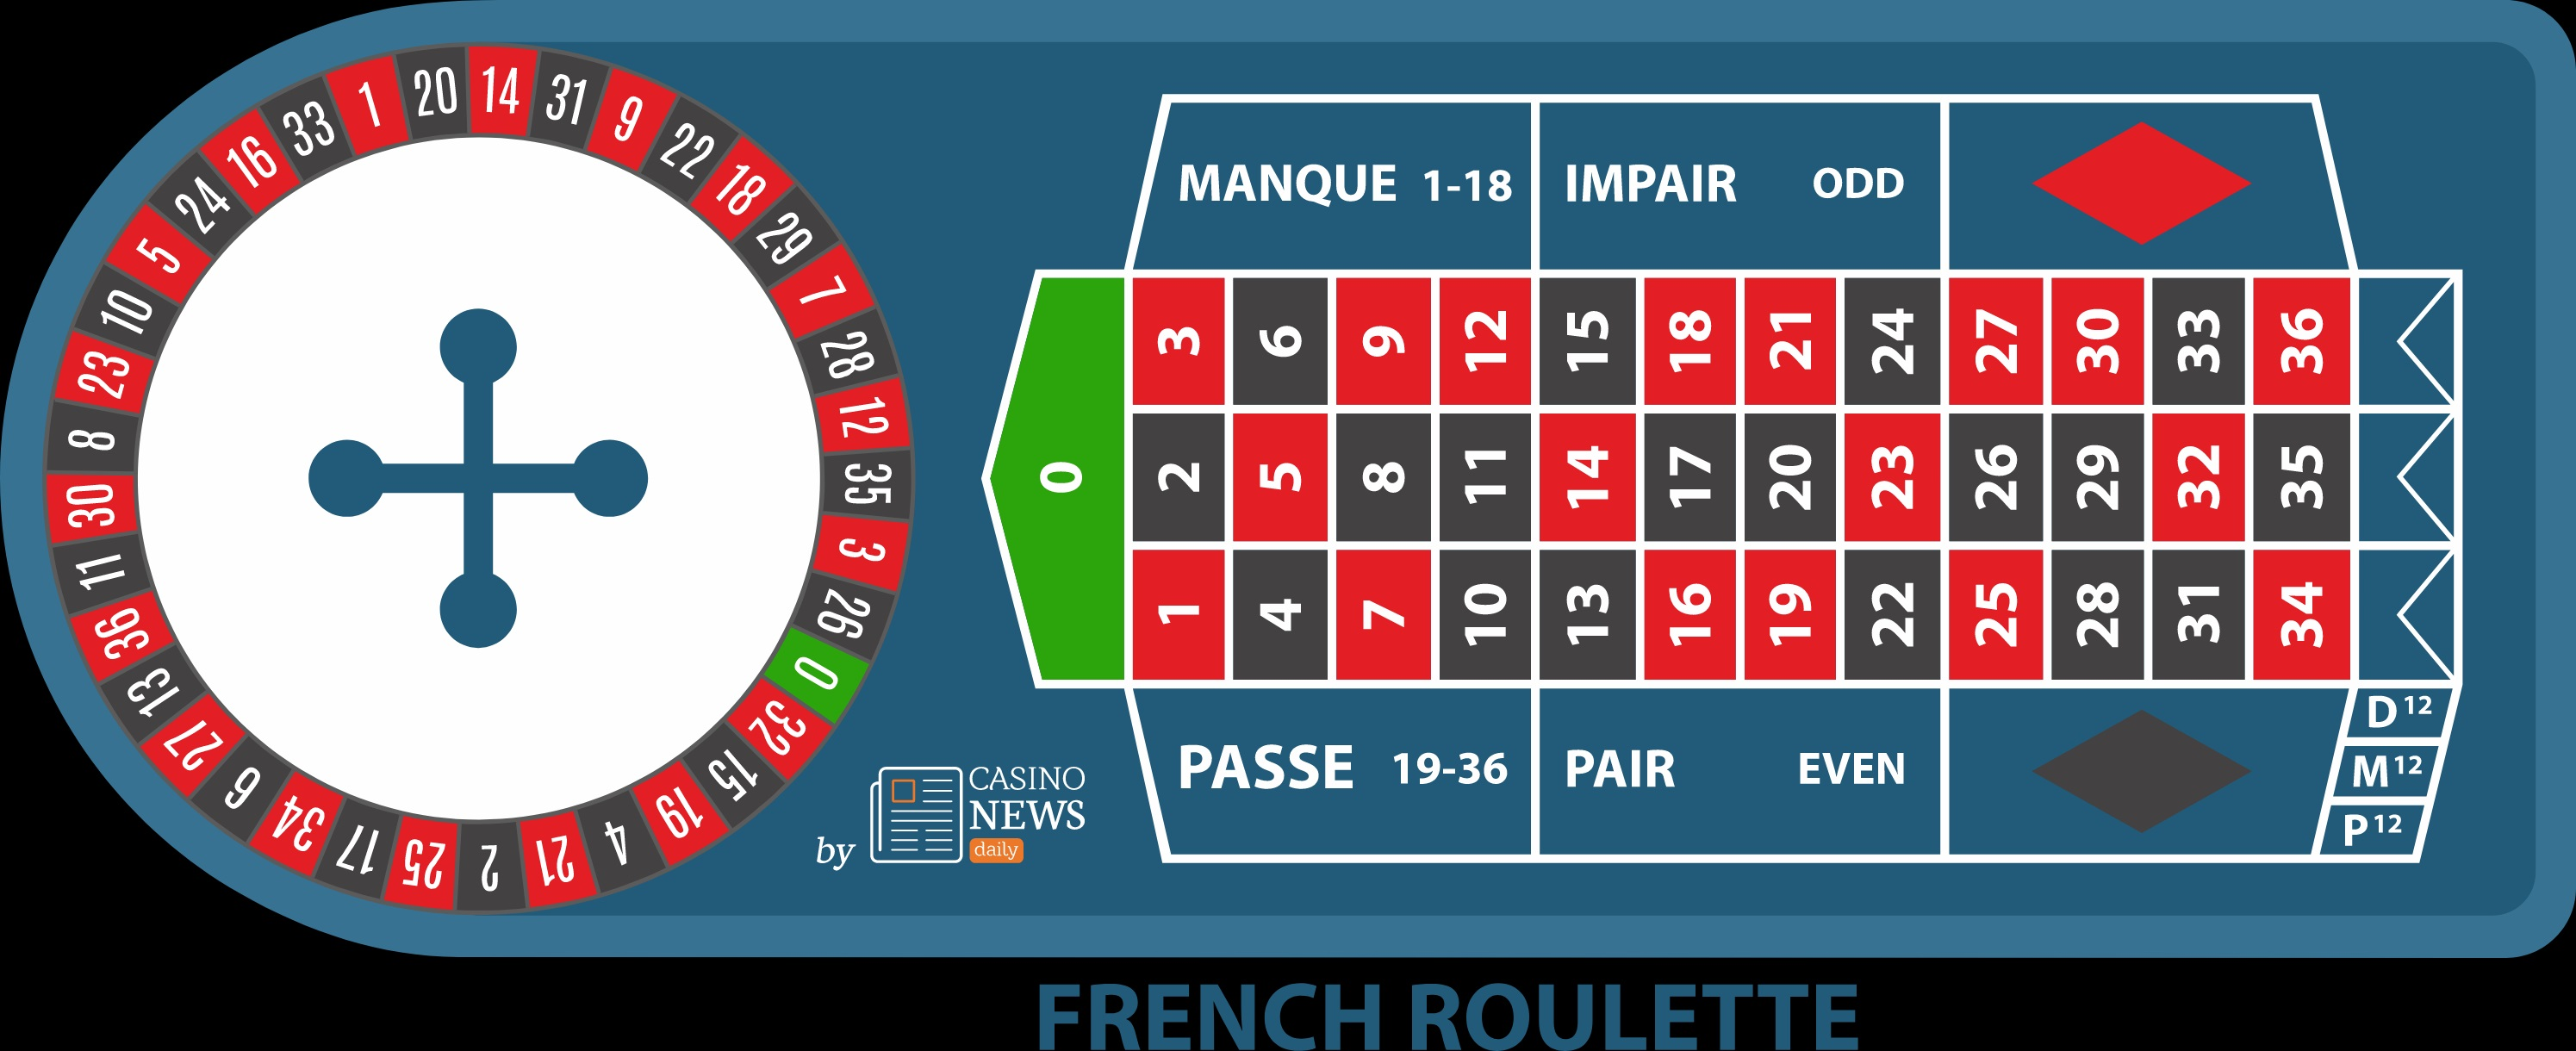 French roulette: more advantage for the player